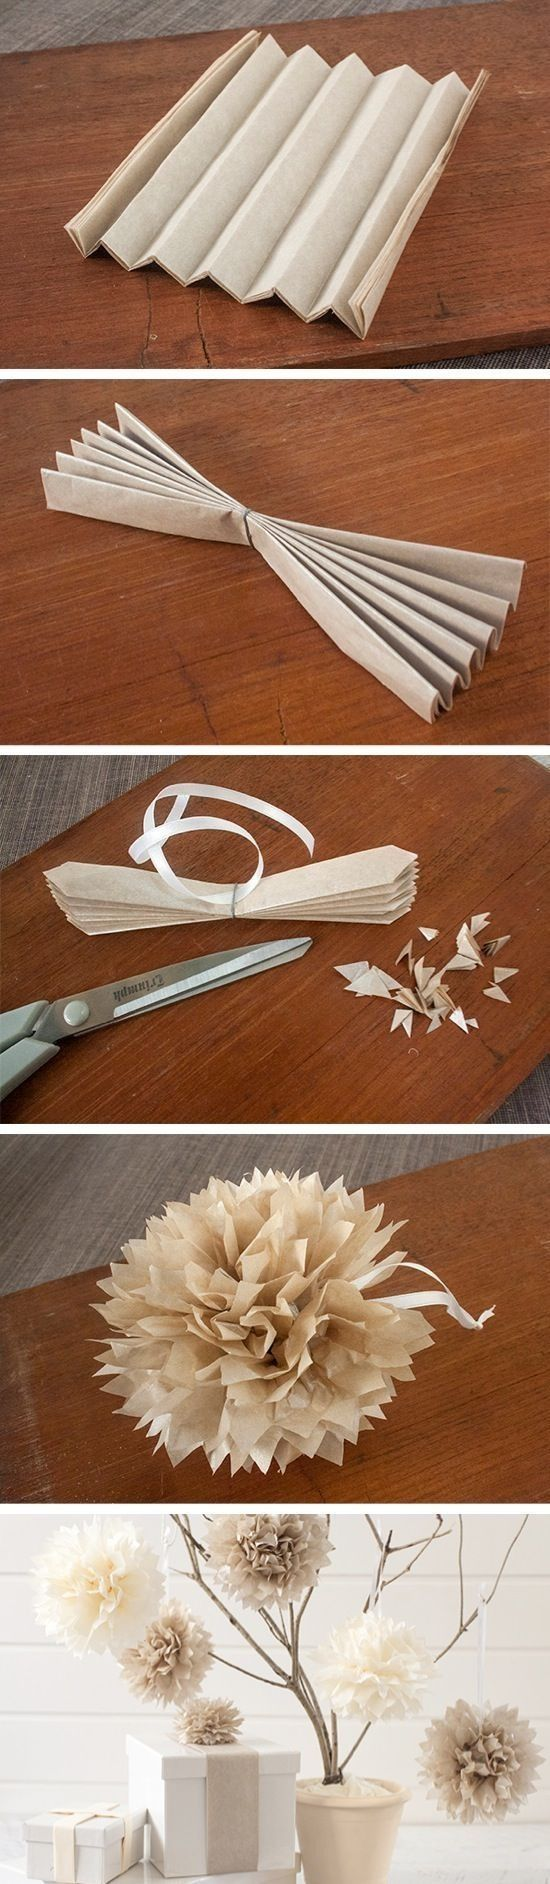 Super easy. Use several sheets of tissue paper. Fold it accordion style. Cut the ends to your desire. Then tie wire and string around the middle. Spread out both sides of the tissue paper and begin peeling up the layers and crinkling them, enjoy!